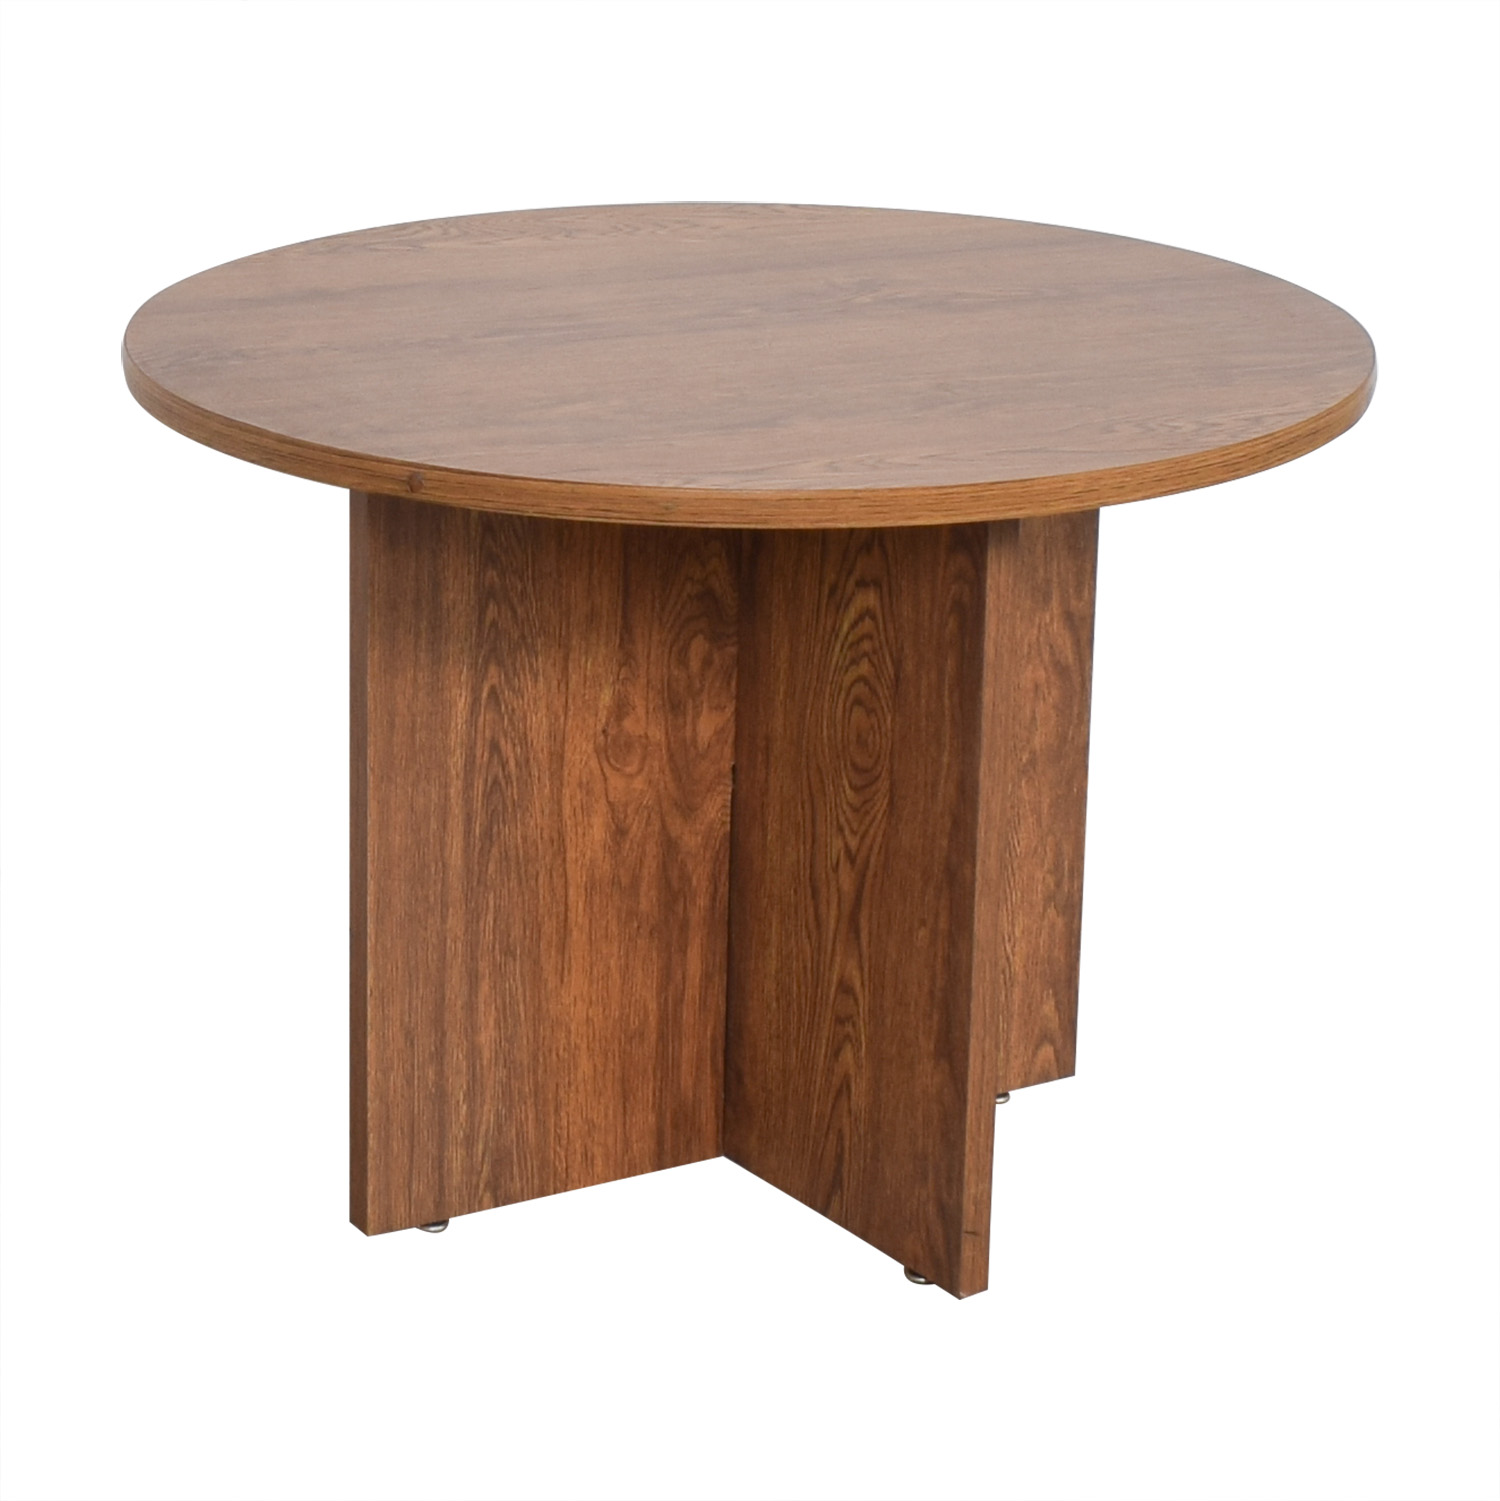 Round Conference Table second hand